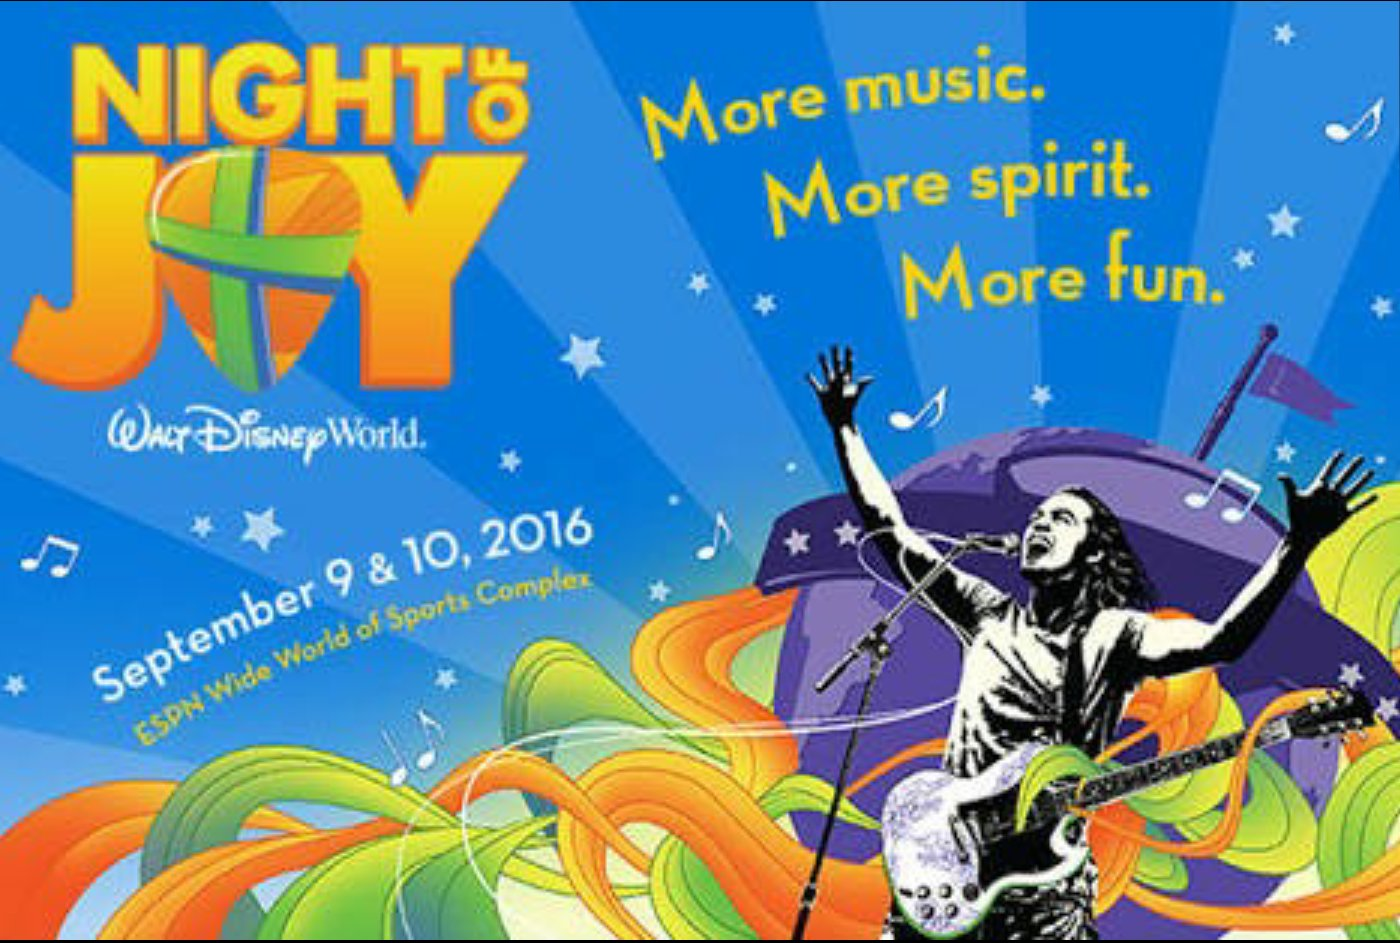 Check out Night of Joy at Walt Disney World - two nights of the best in Contemporary Christian music  #ad https://t.co/U85AhxYN4N